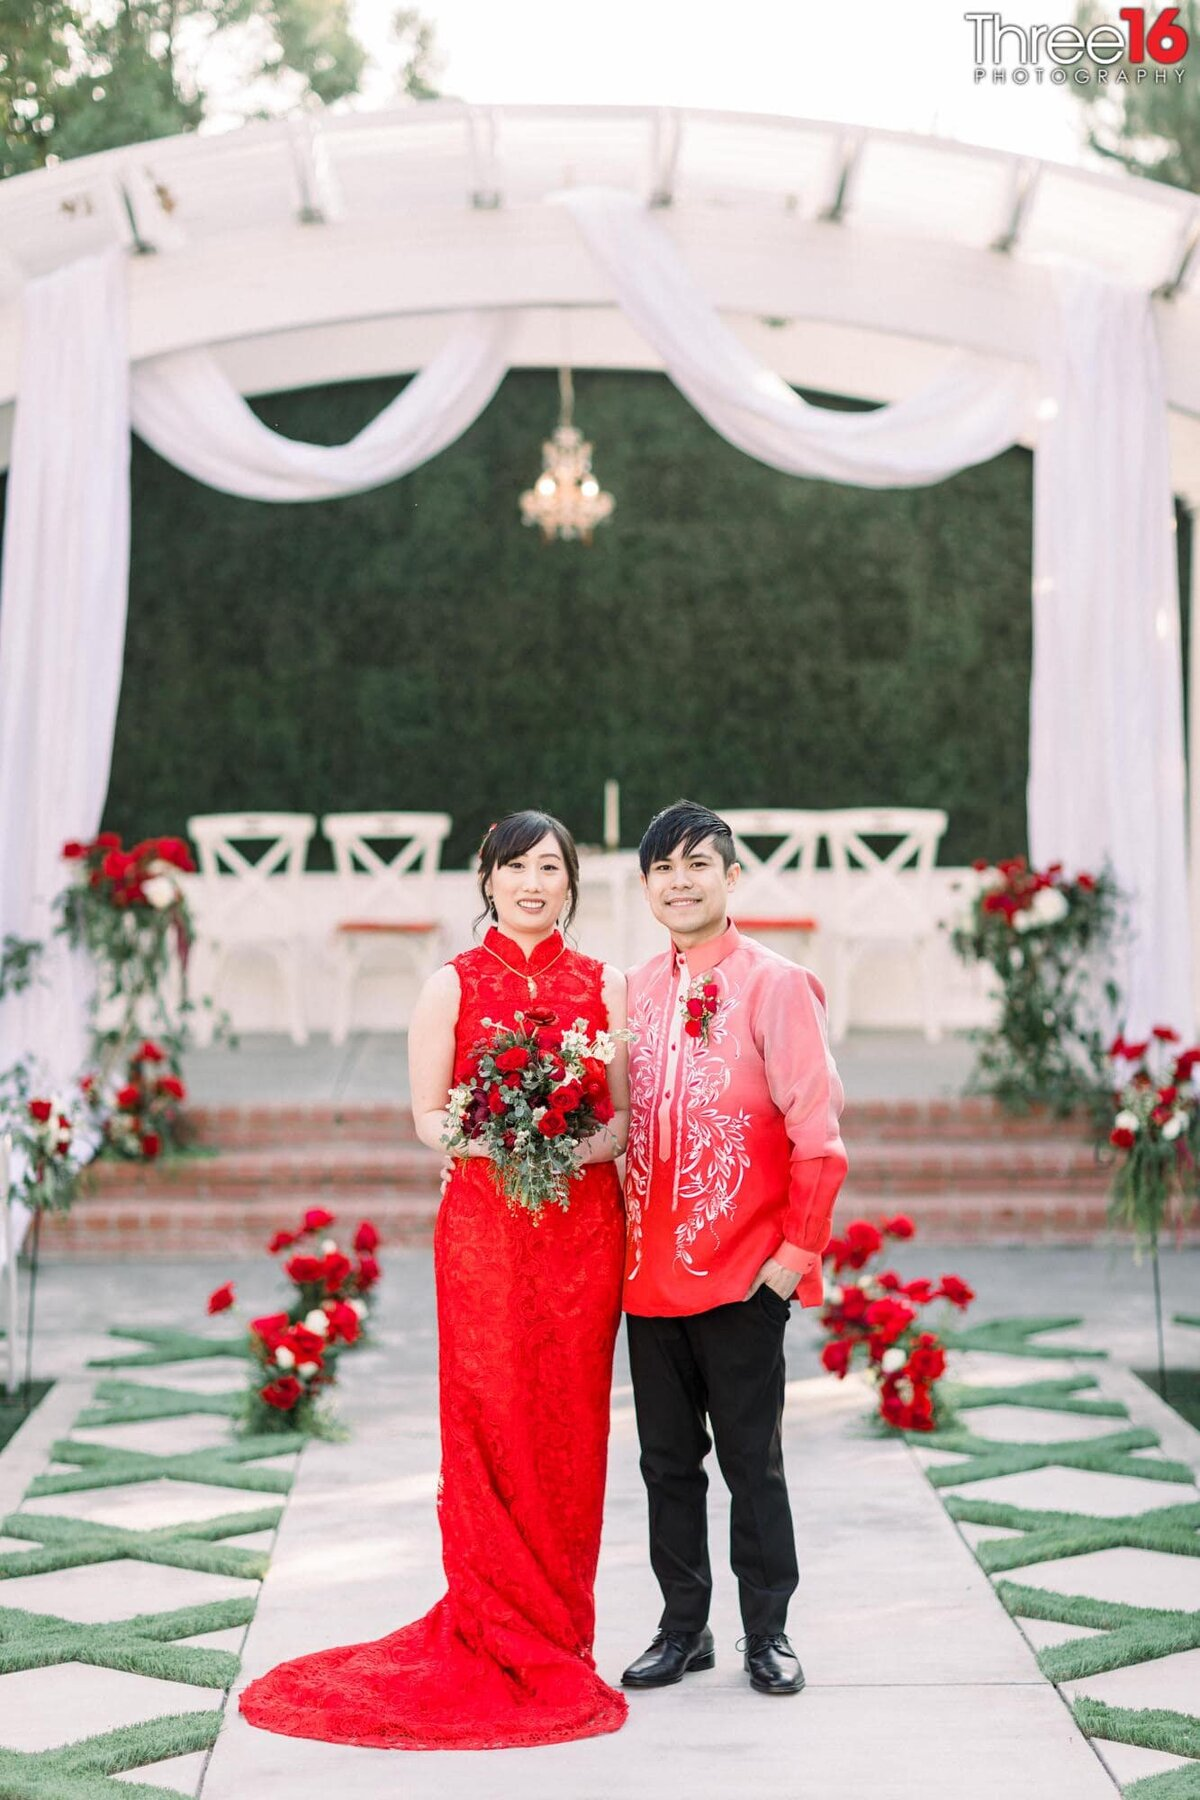 Filipino Wedding Traditions Orange County Professional Photography-37